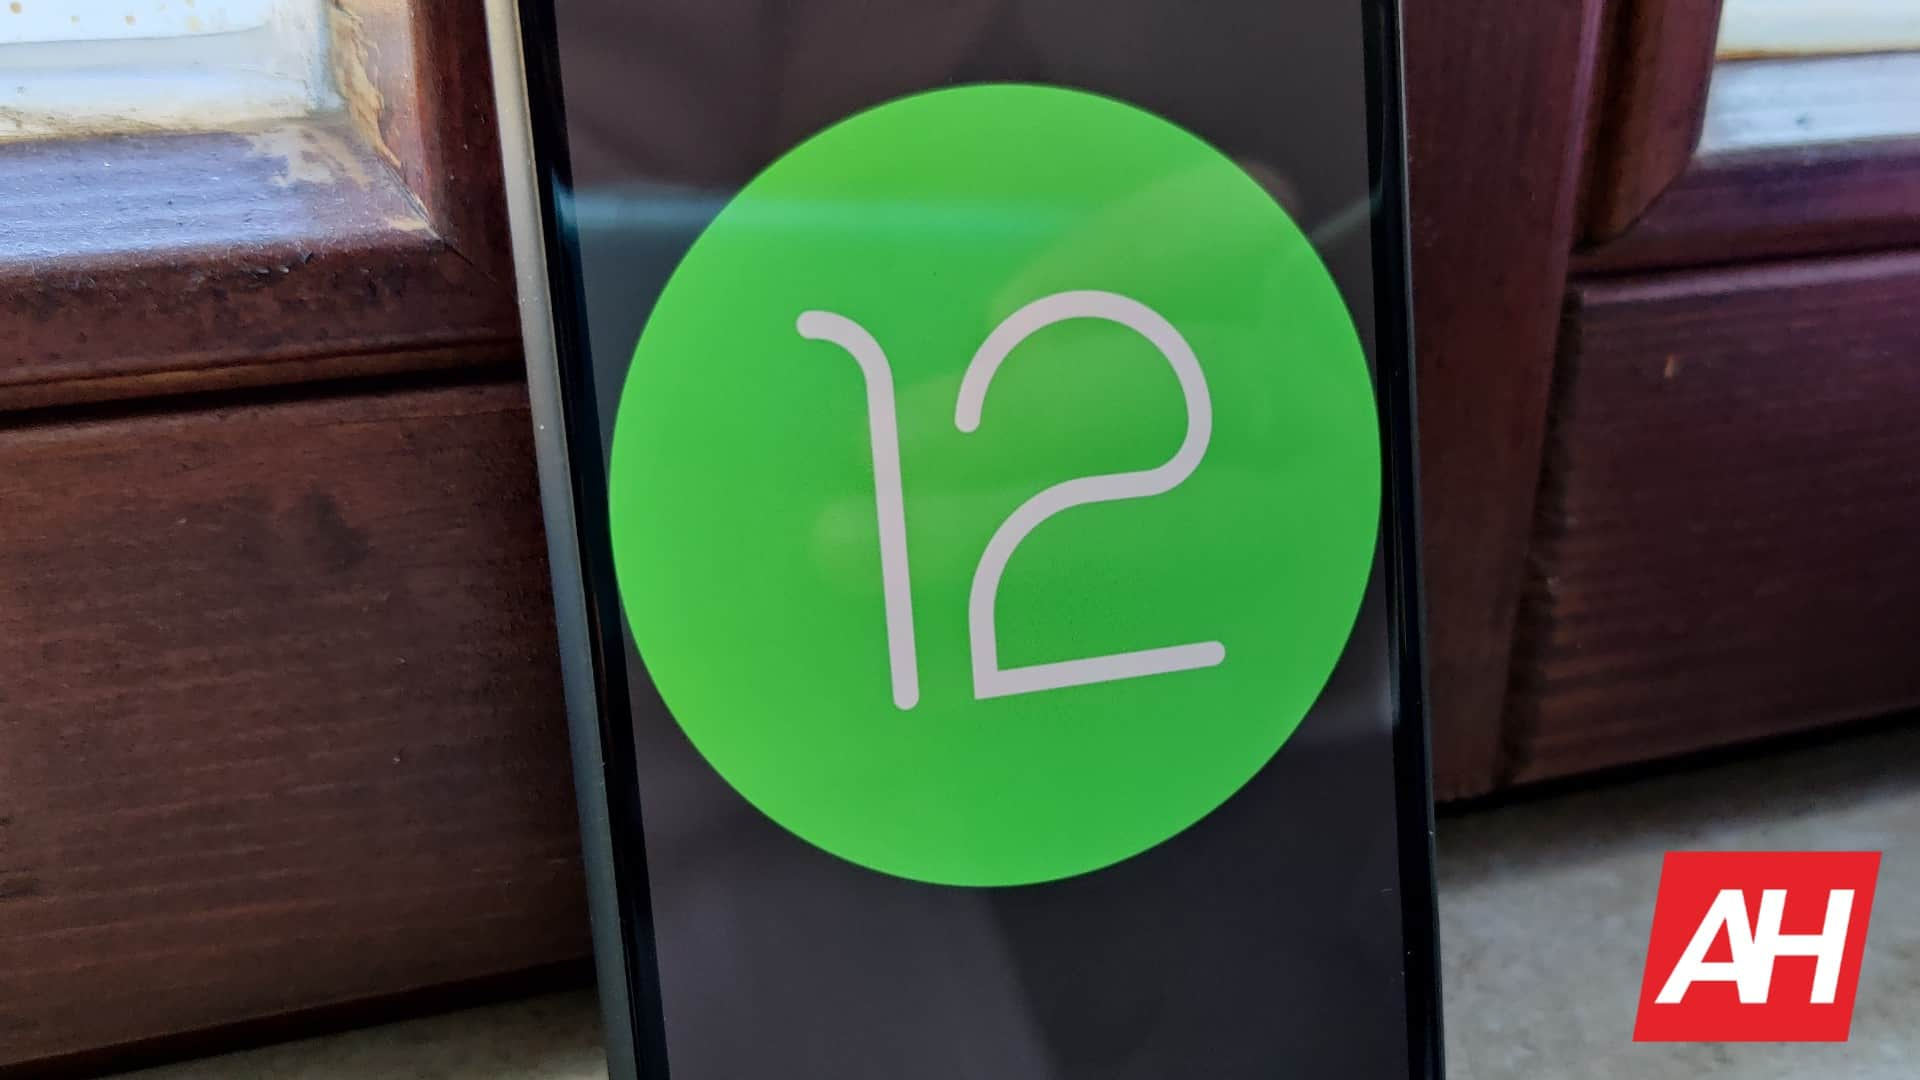 Android 12 Beta 2 Brings New Way Of Switching Between Wi-Fi & Mobile Data